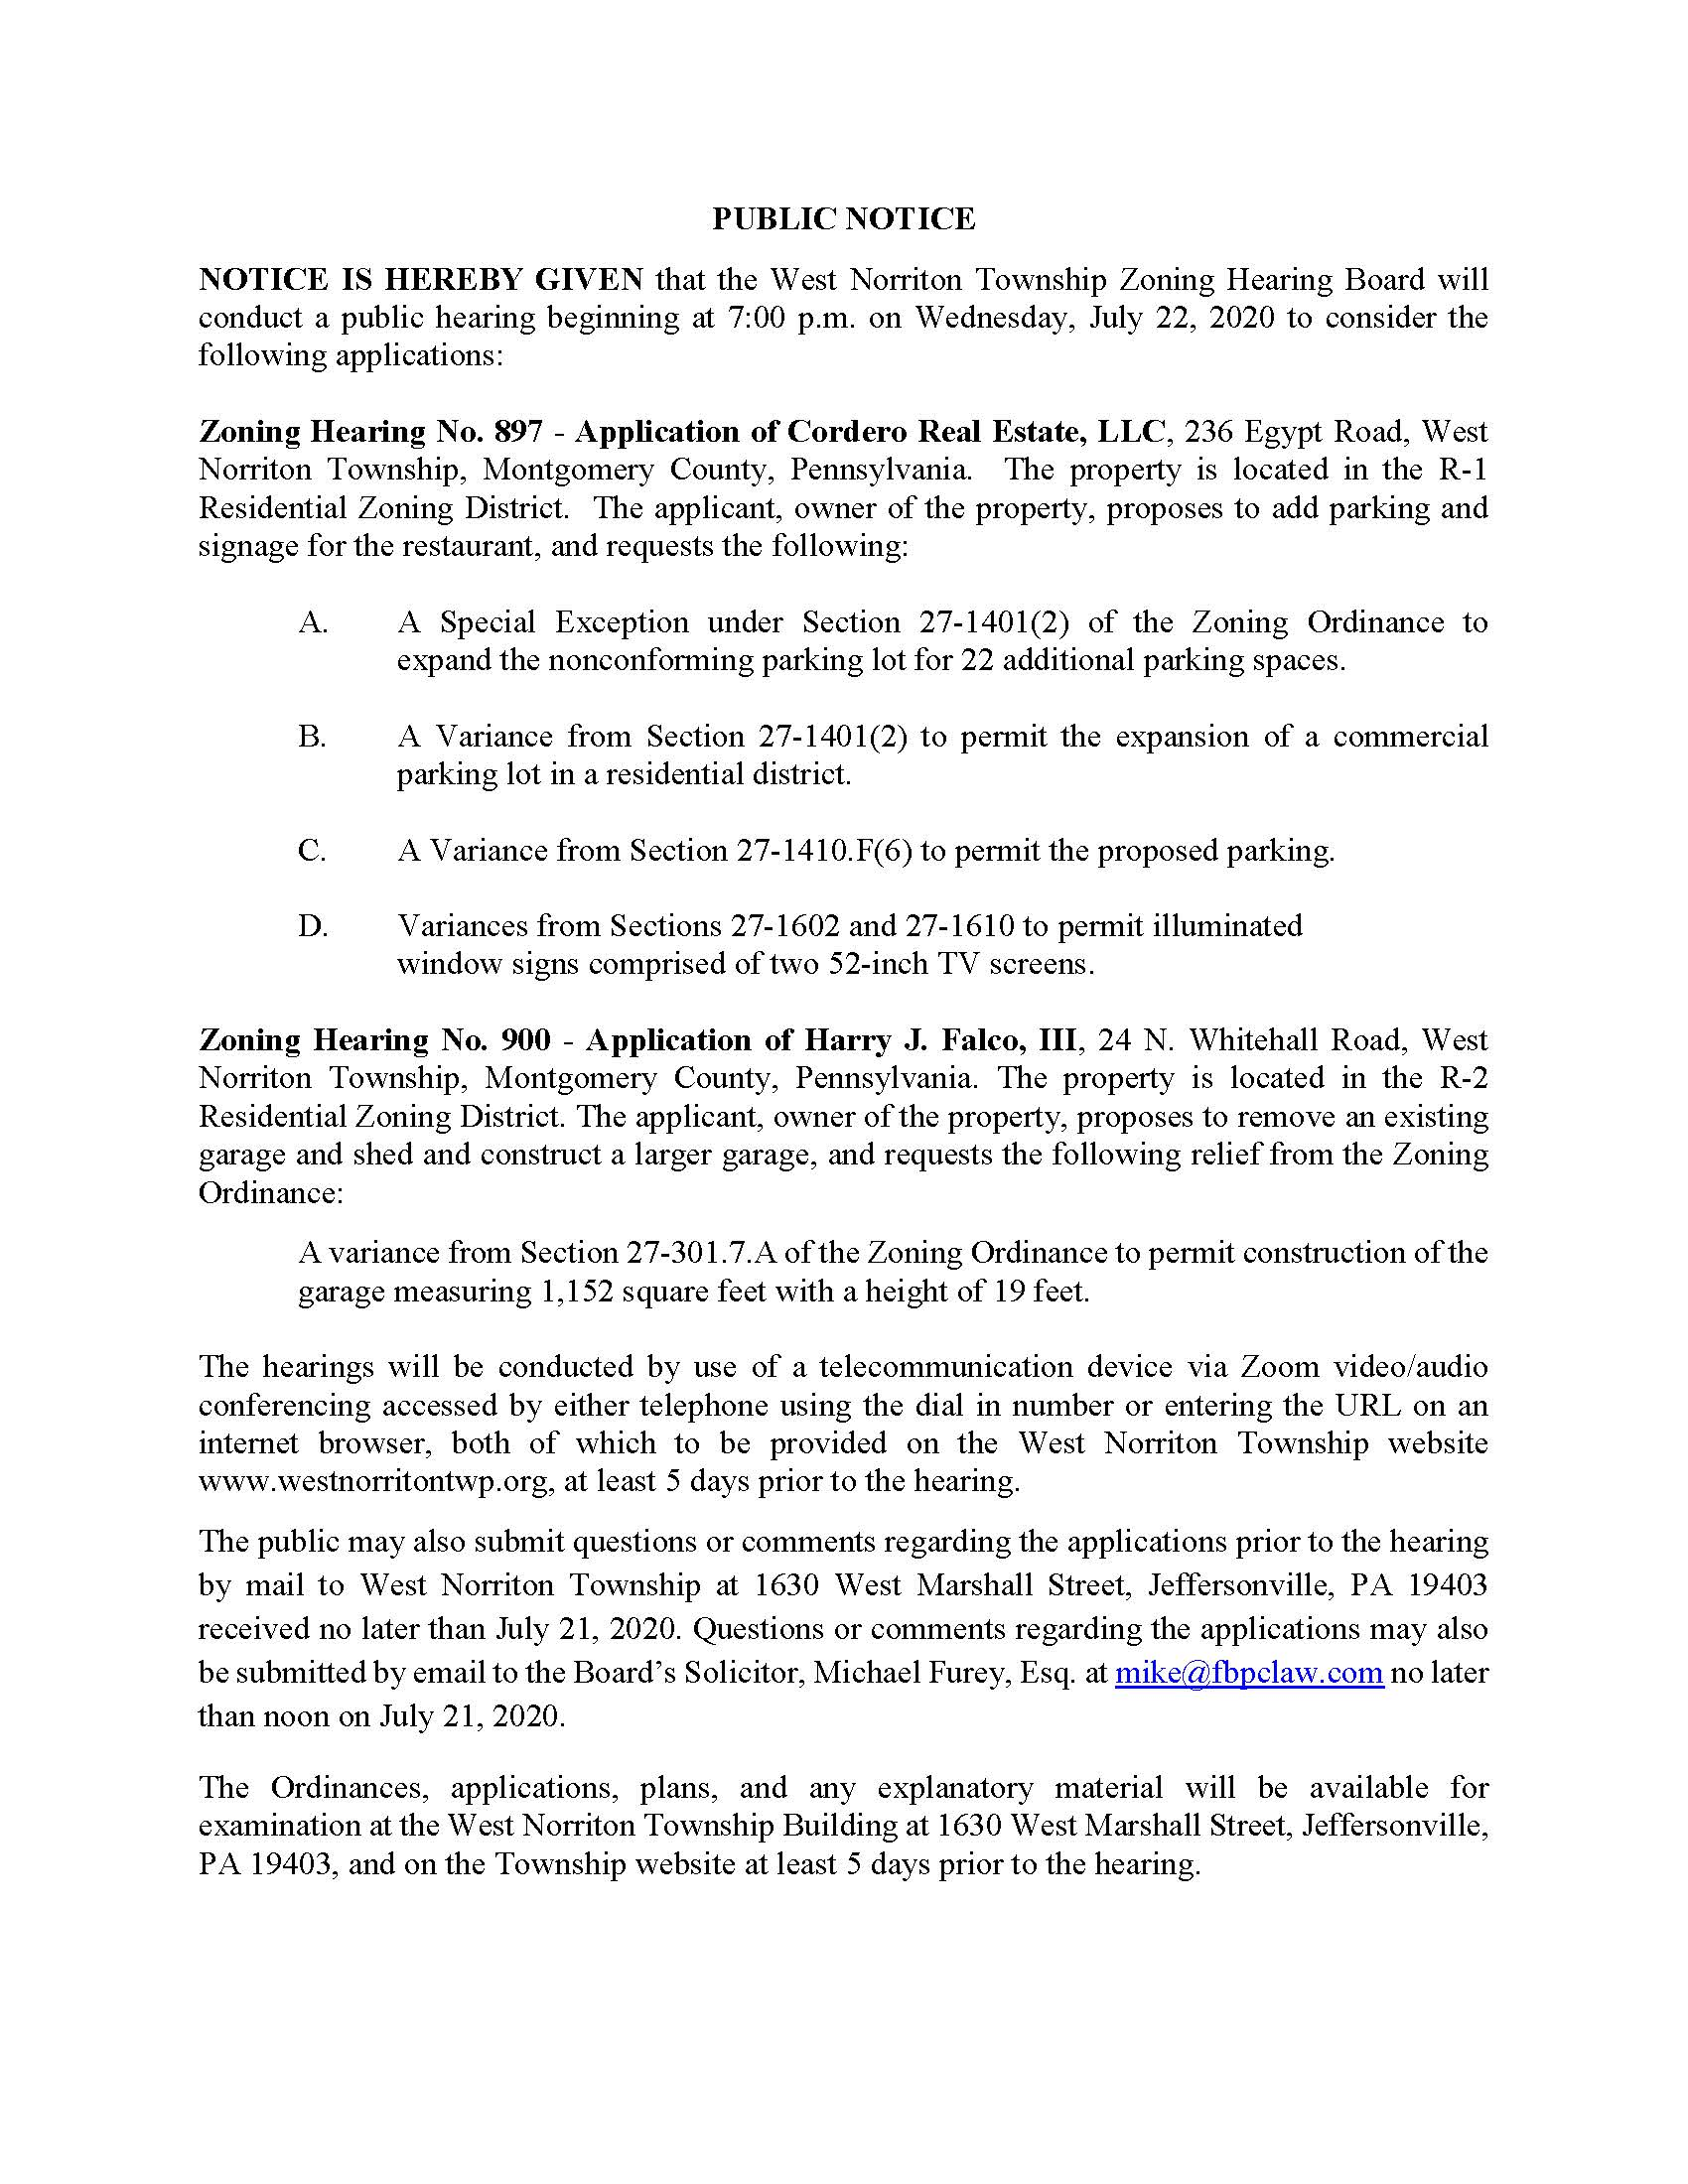 ZHB Hearing Notice July 22 Nos 897 and 900 PDF_Page_1